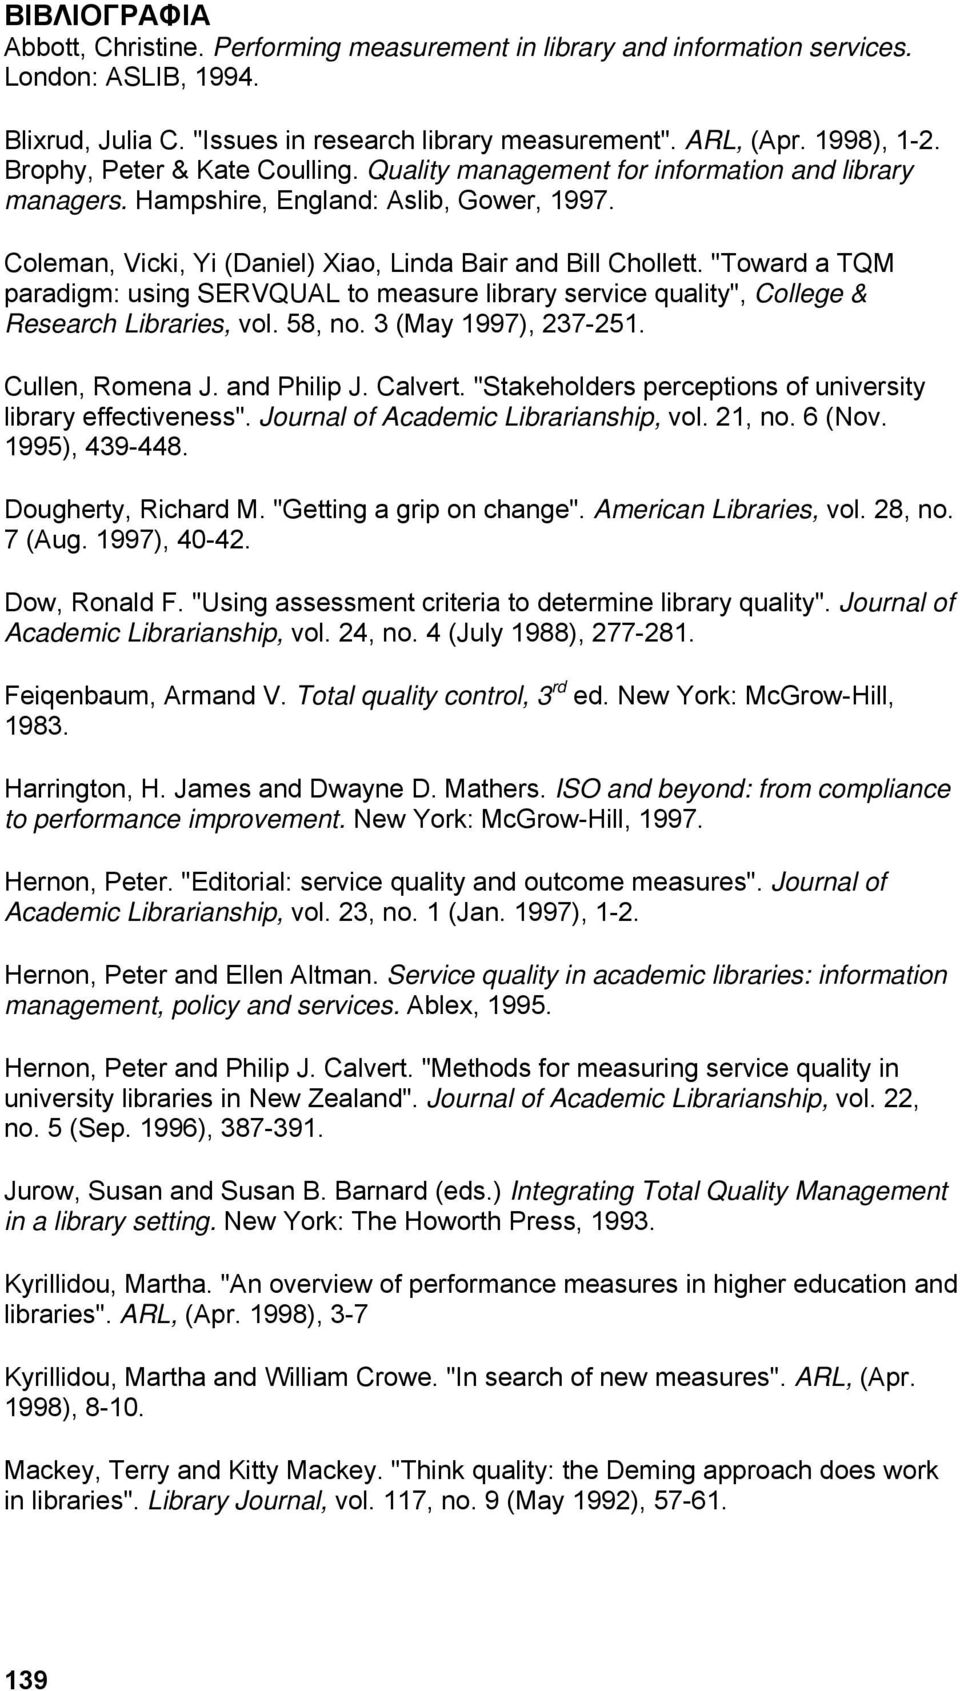 """Toward a TQM paradigm: using SERVQUAL to measure library service quality"", College & Research Libraries, vol. 58, no. 3 (May 1997), 237-251. Cullen, Romena J. and Philip J. Calvert."